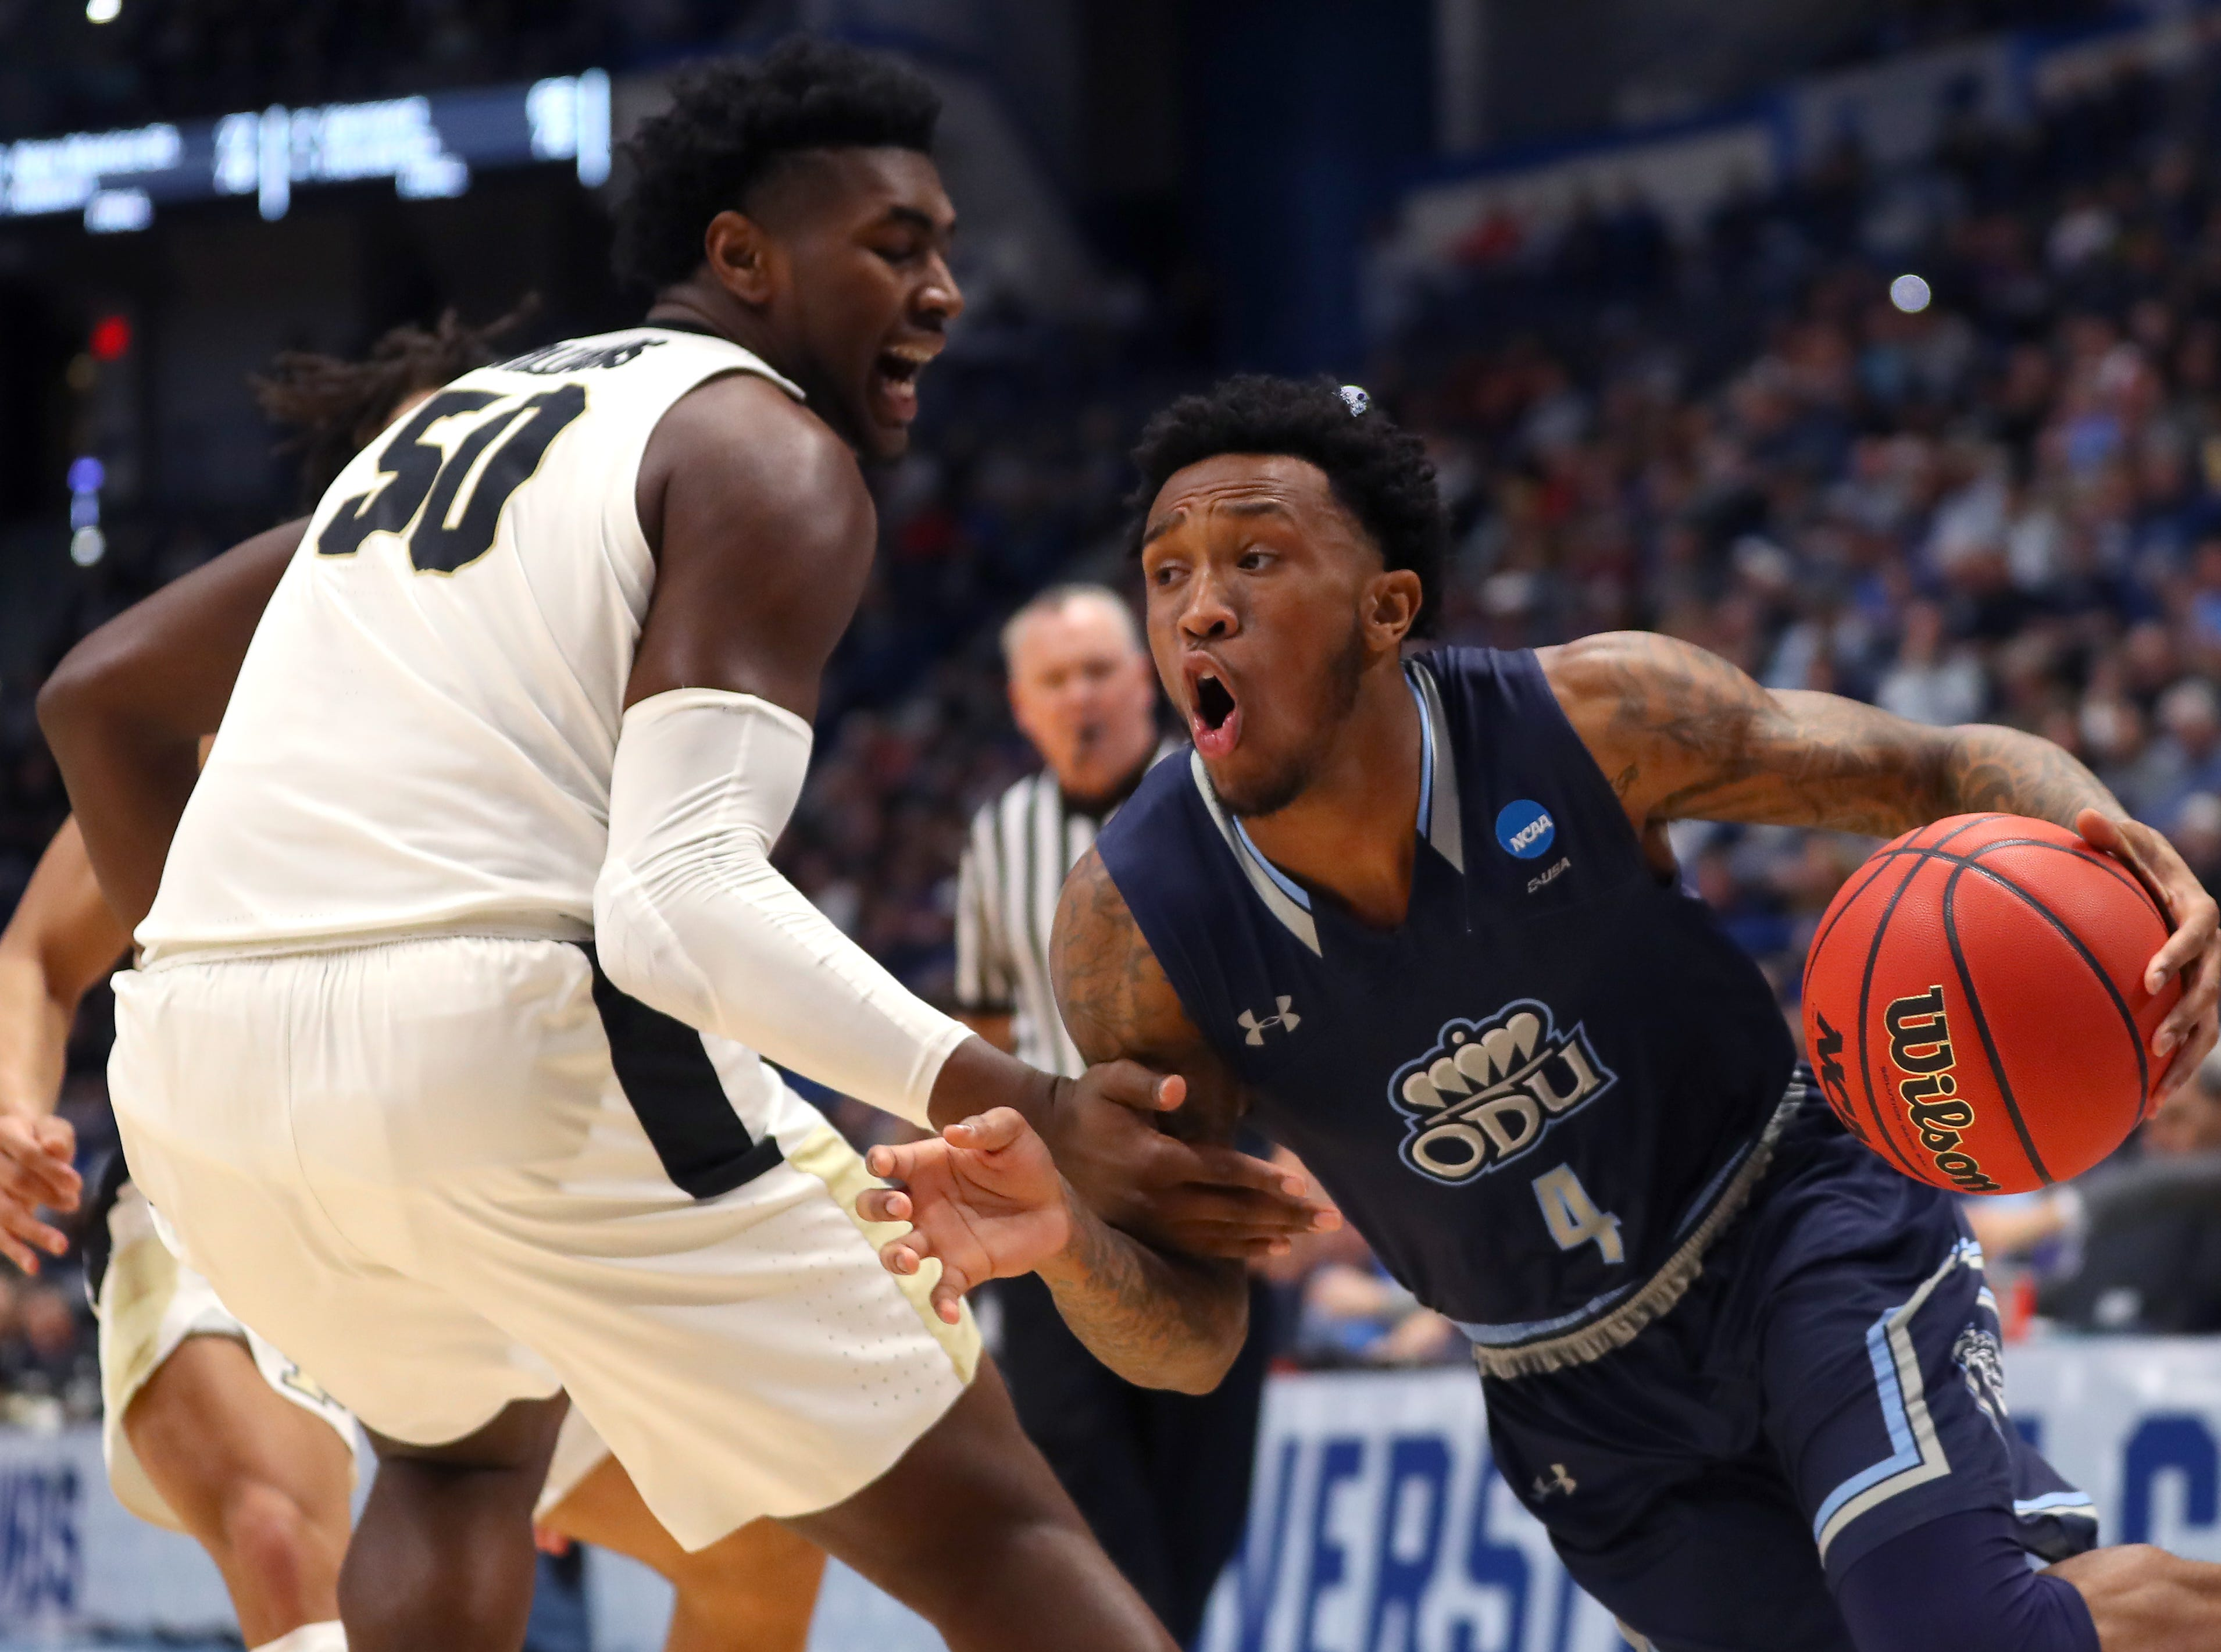 Ahmad Caver #4 of the Old Dominion Monarchs drives with the ball against Trevion Williams #50 of the Purdue Boilermakers in the first half during the first round of the 2019 NCAA Men's Basketball Tournament at XL Center on March 21, 2019 in Hartford, Connecticut.